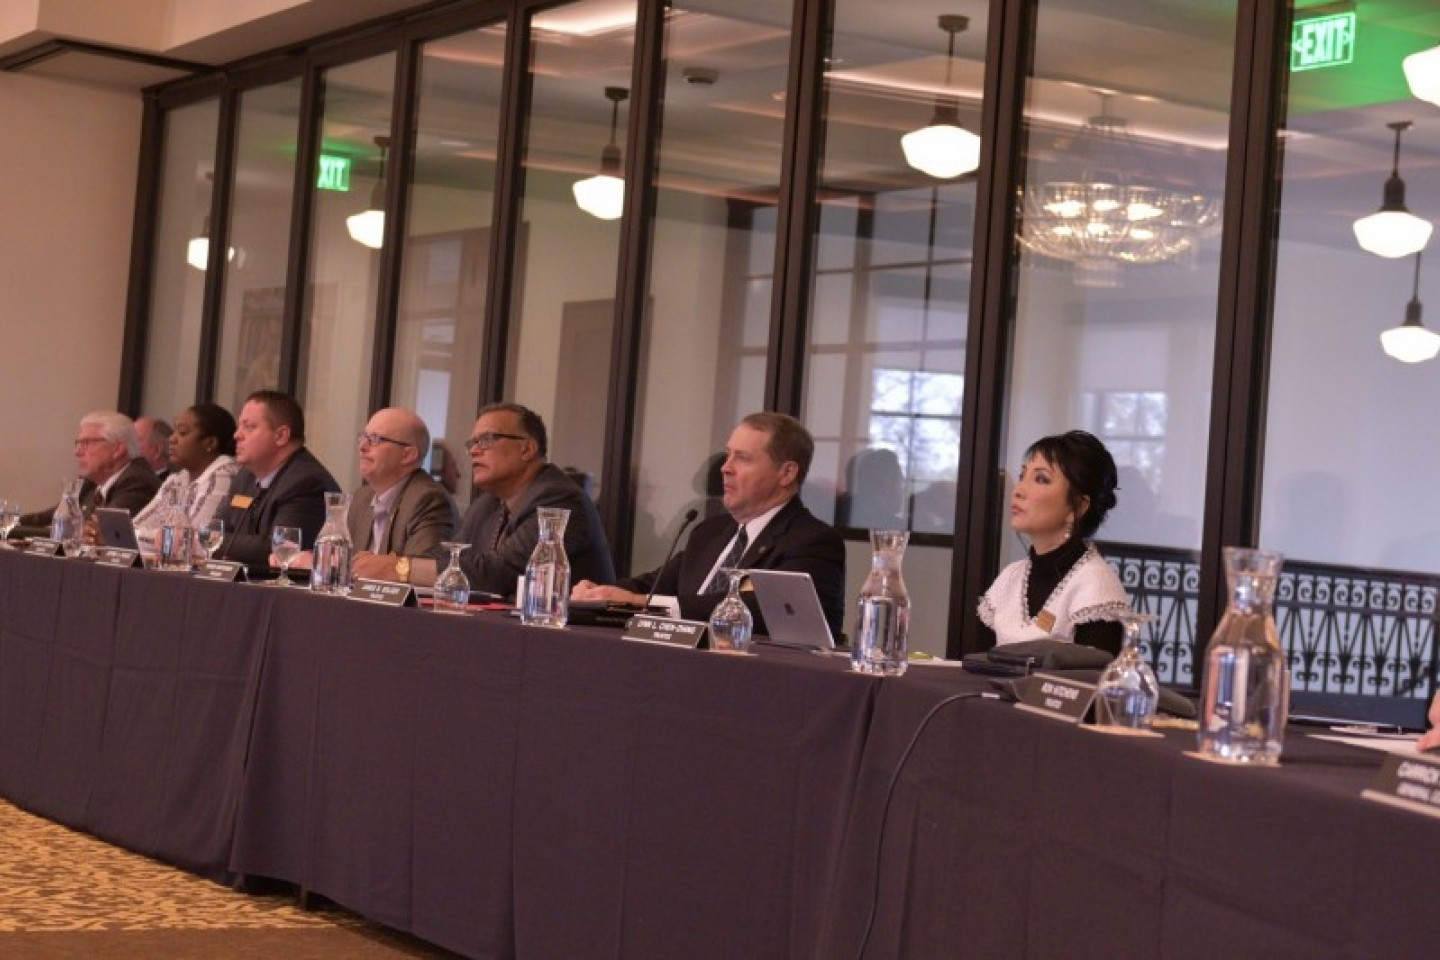 A photo of WMU trustees sitting at a table.